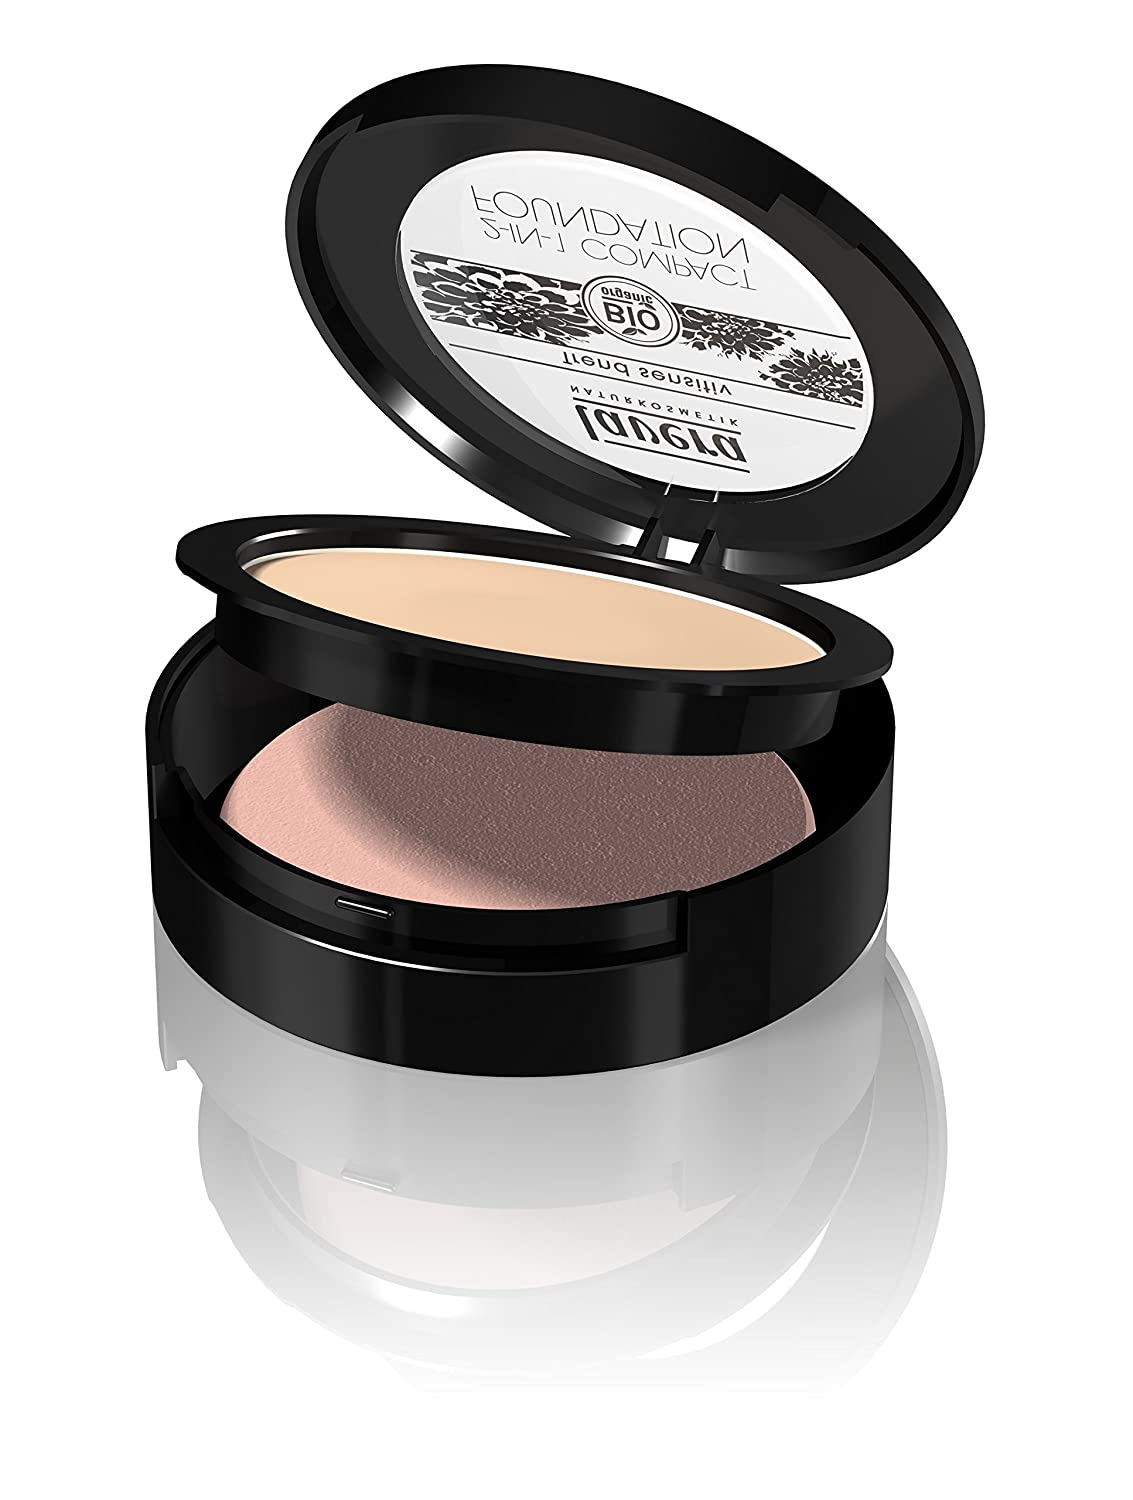 Lavera 2-in-1 Compact Foundation Honey 03 ∙ Vegan ∙ Bio ∙ 100% cosmetici naturali 10 g Laverana Gmbh & Co. Kg 1051960